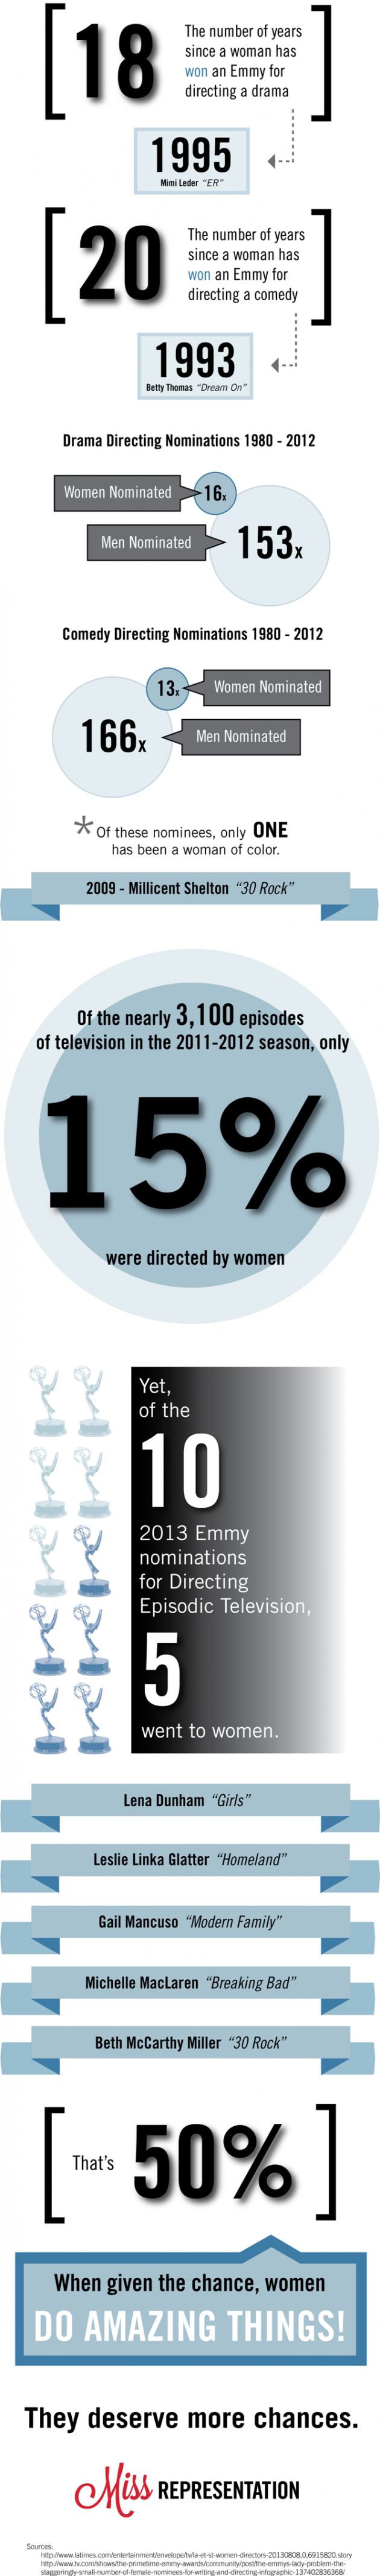 Emmys_infographic